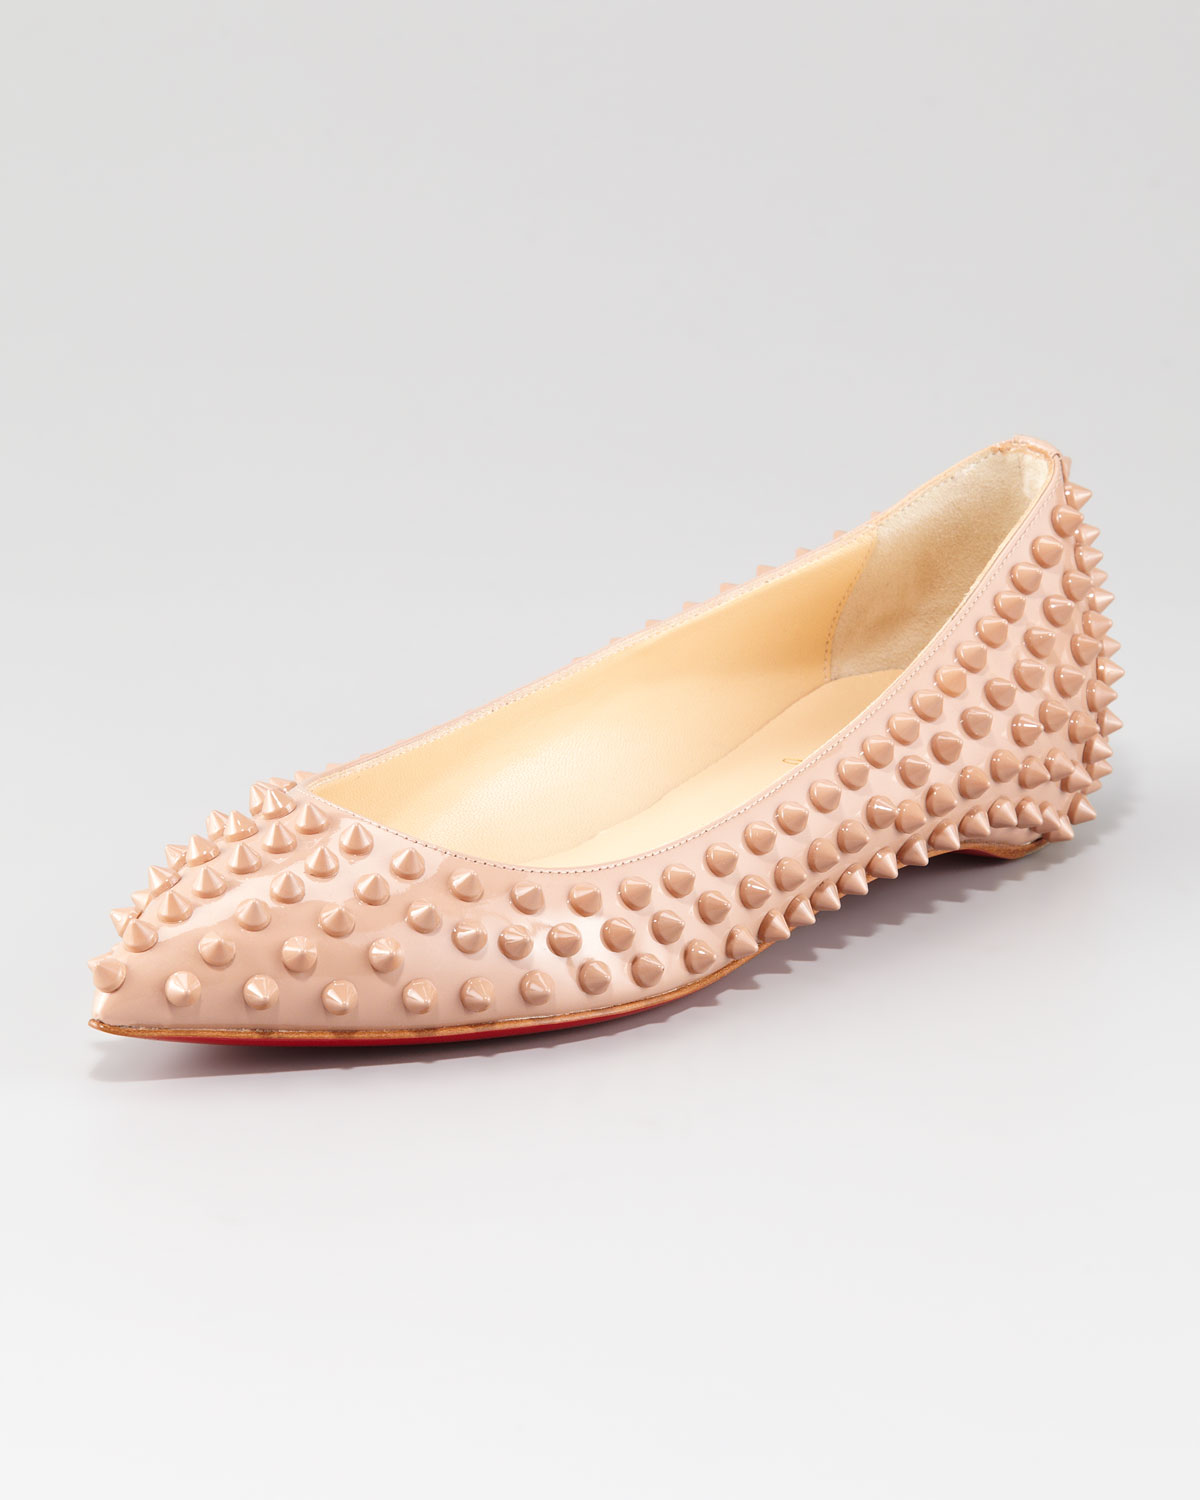 buy online 37241 bf922 inexpensive christian louboutin love flats price 450be b55d5